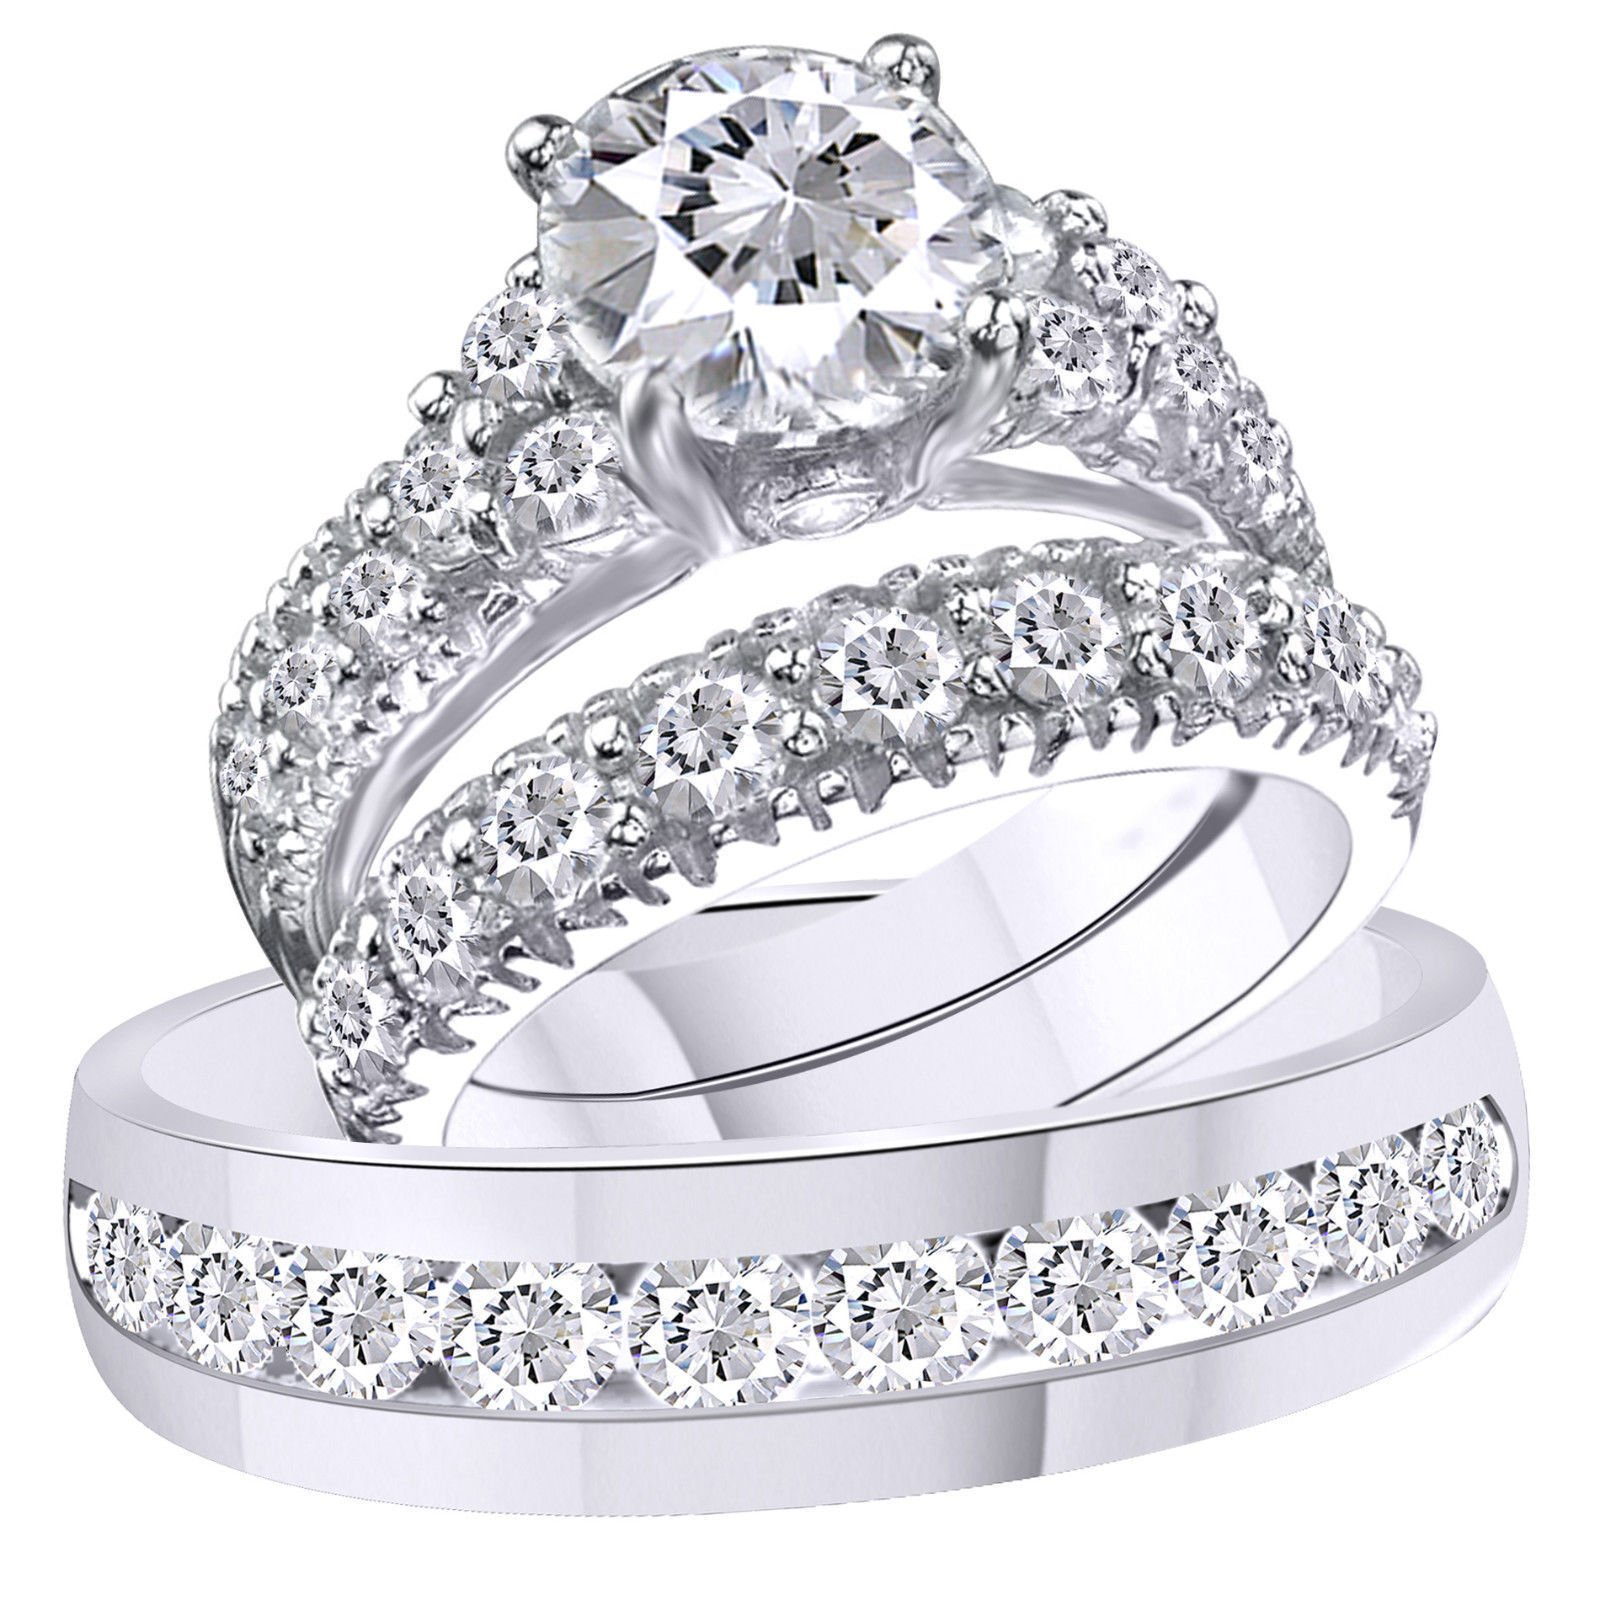 2heart 3.75 Ct Diamond 14k White Gold Fn Trio Engagement Wedding Ring Set For His & Her by 2heart